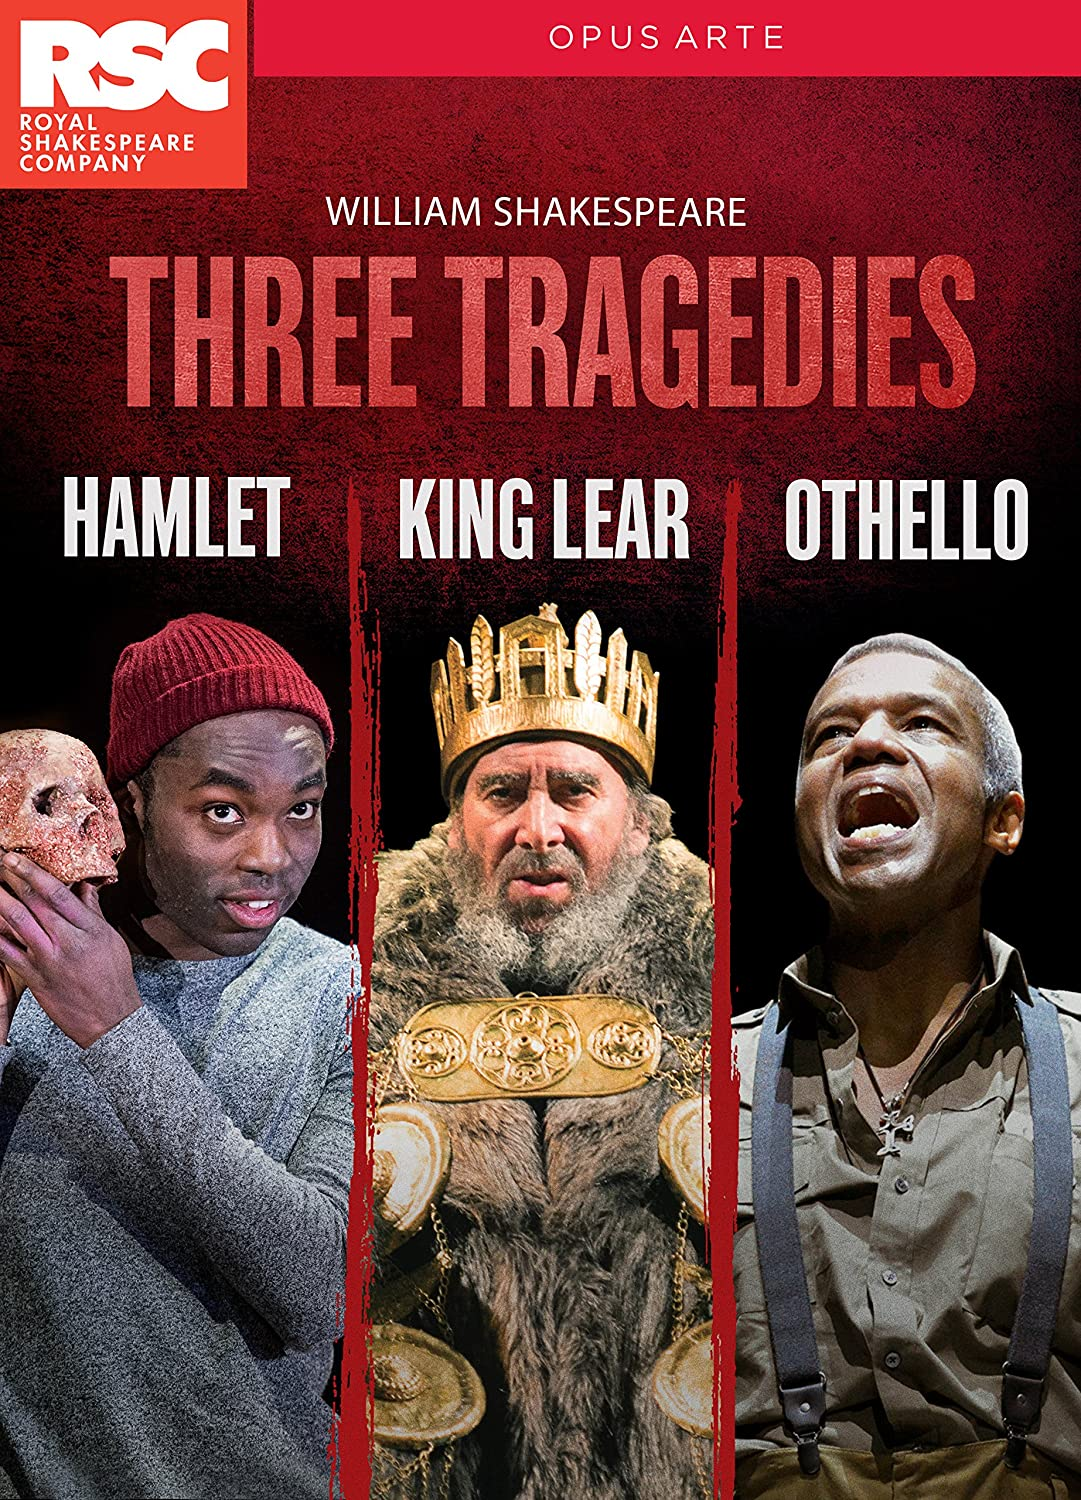 RSC: Three Tragedies